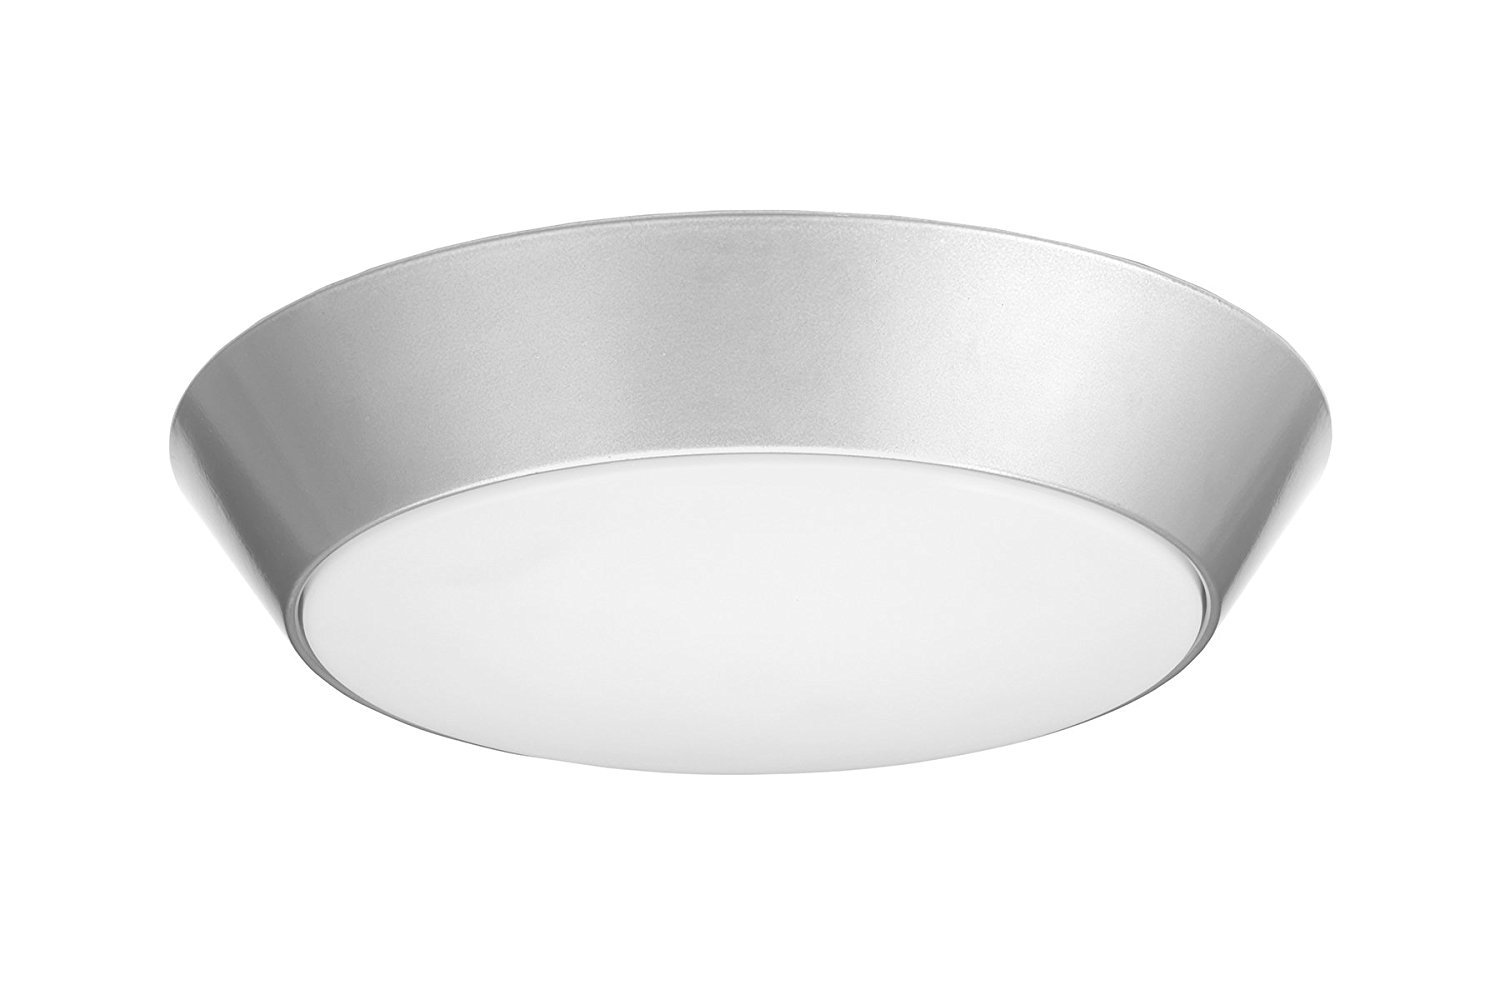 Lithonia Lighting 13 inch Round LED Flush Mount Thin Ceiling Light Mount, Nickel, 3000K, Dimmable